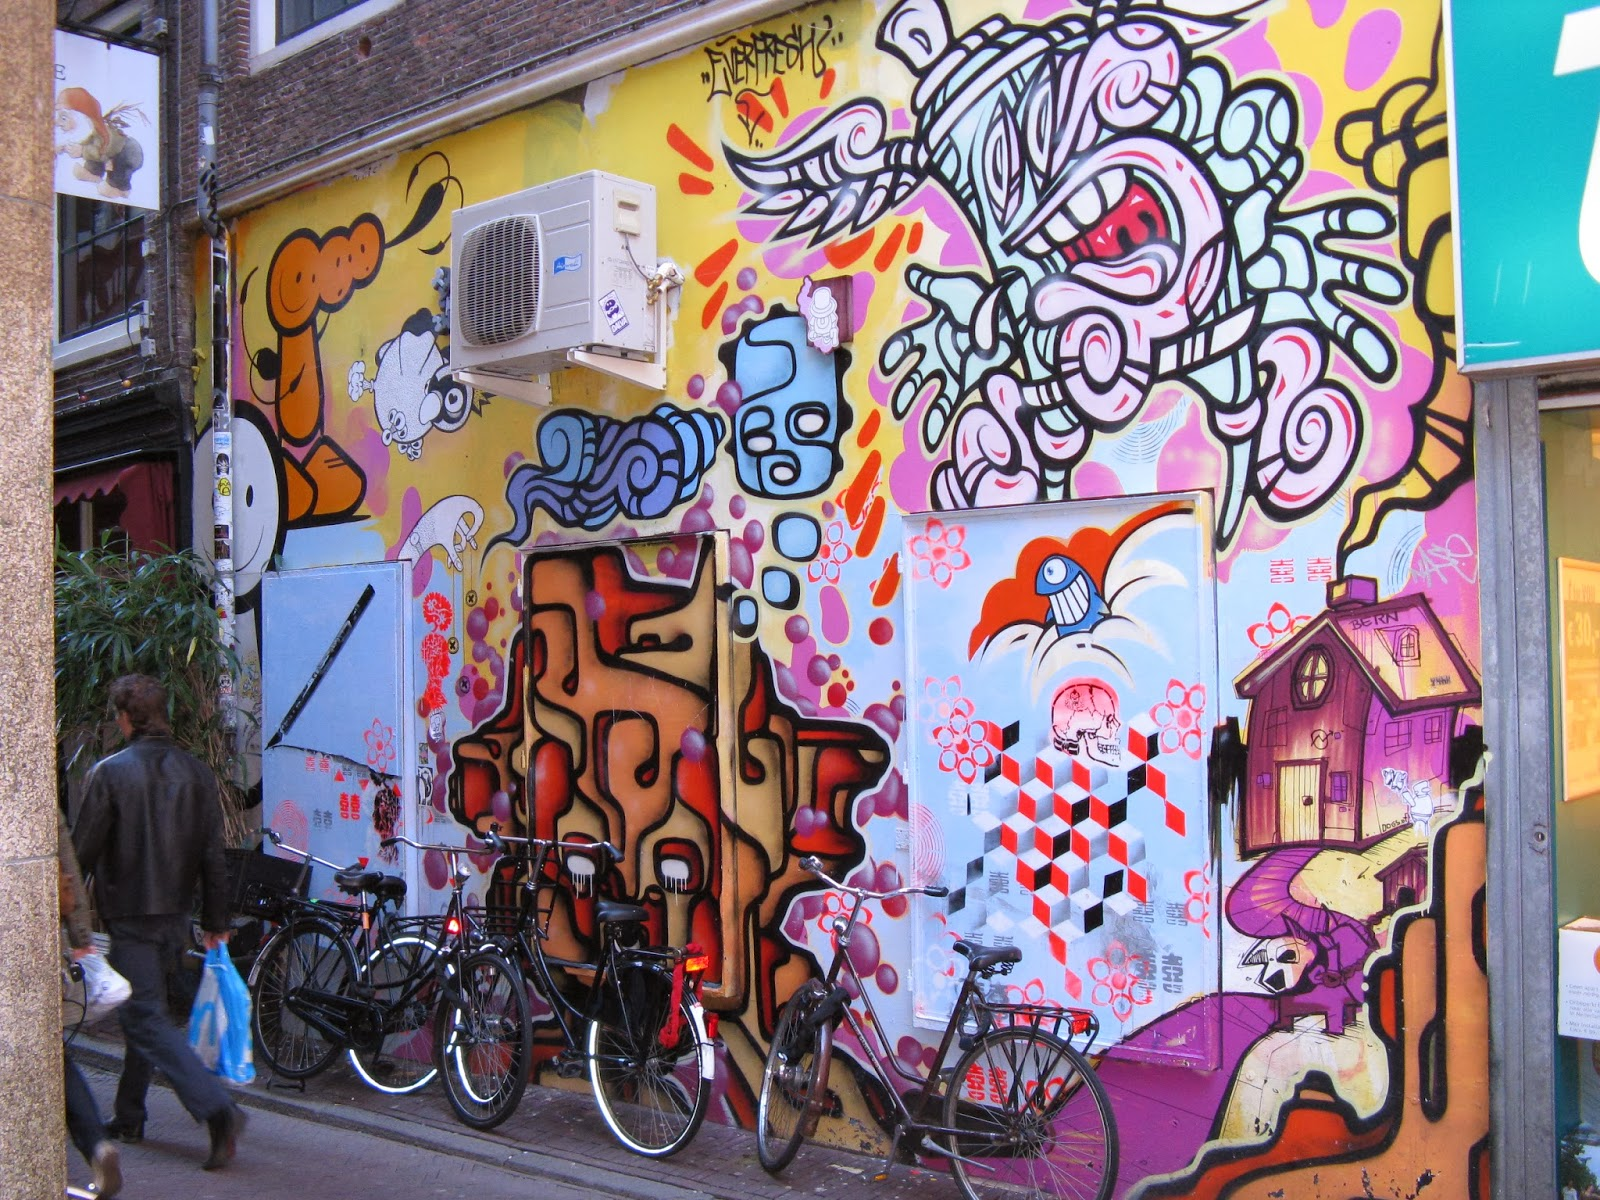 Graffiti art or vandalism learnenglish teens british free essay